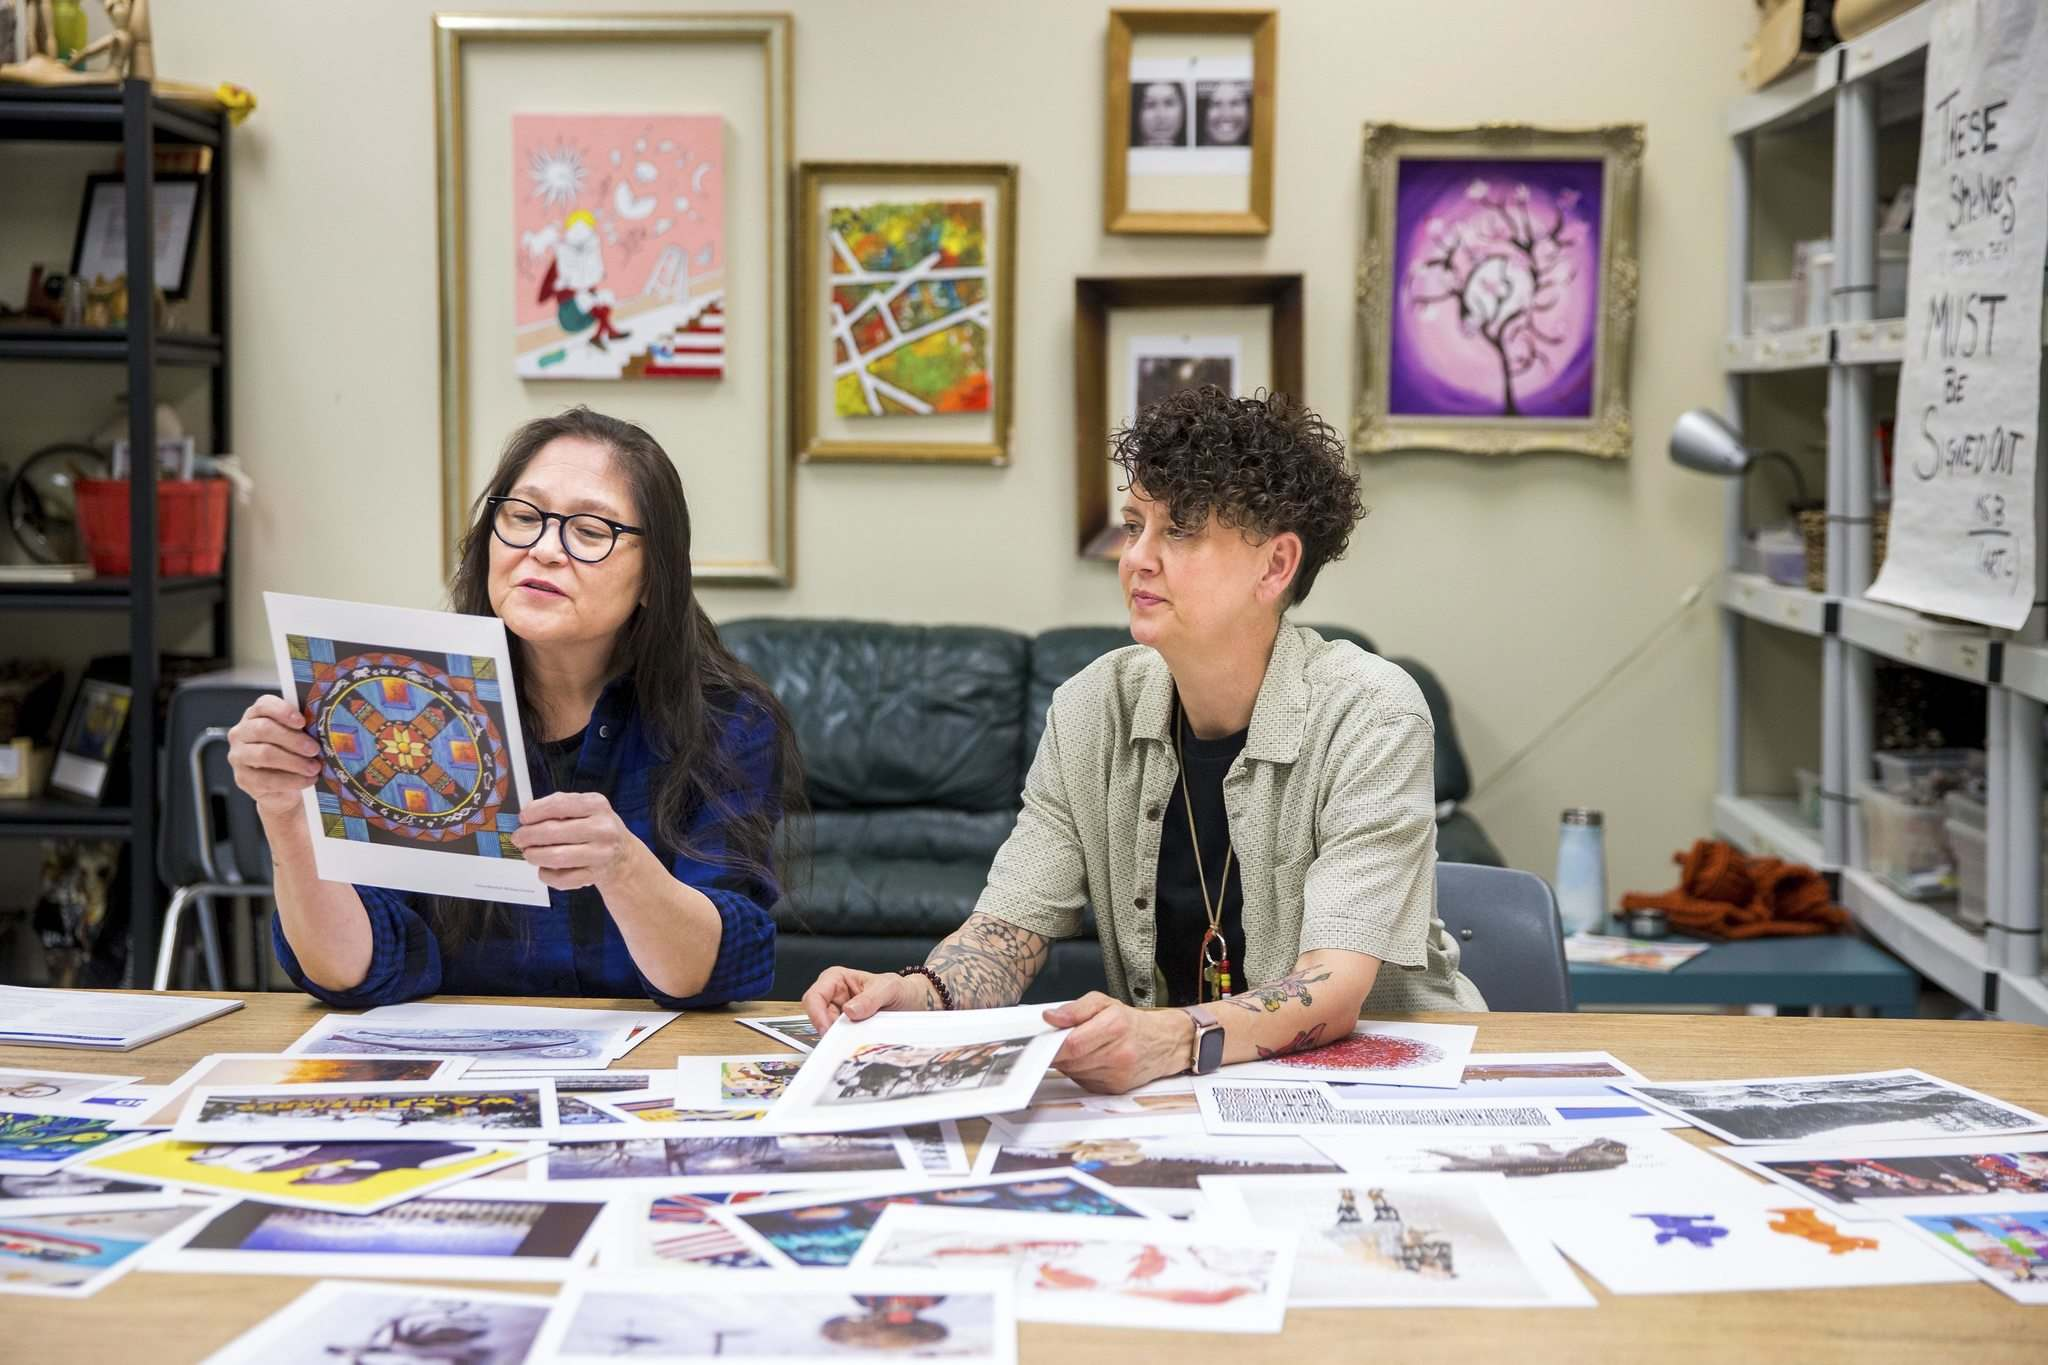 Artist Lita Fontaine (left) and art teacher Barb Bottle with the MAWA art cards, which includes a teaching guide informed by the Truth and Reconciliation Commission's calls to action on education. (Mikaela MacKenzie / Winnipeg Free Press)